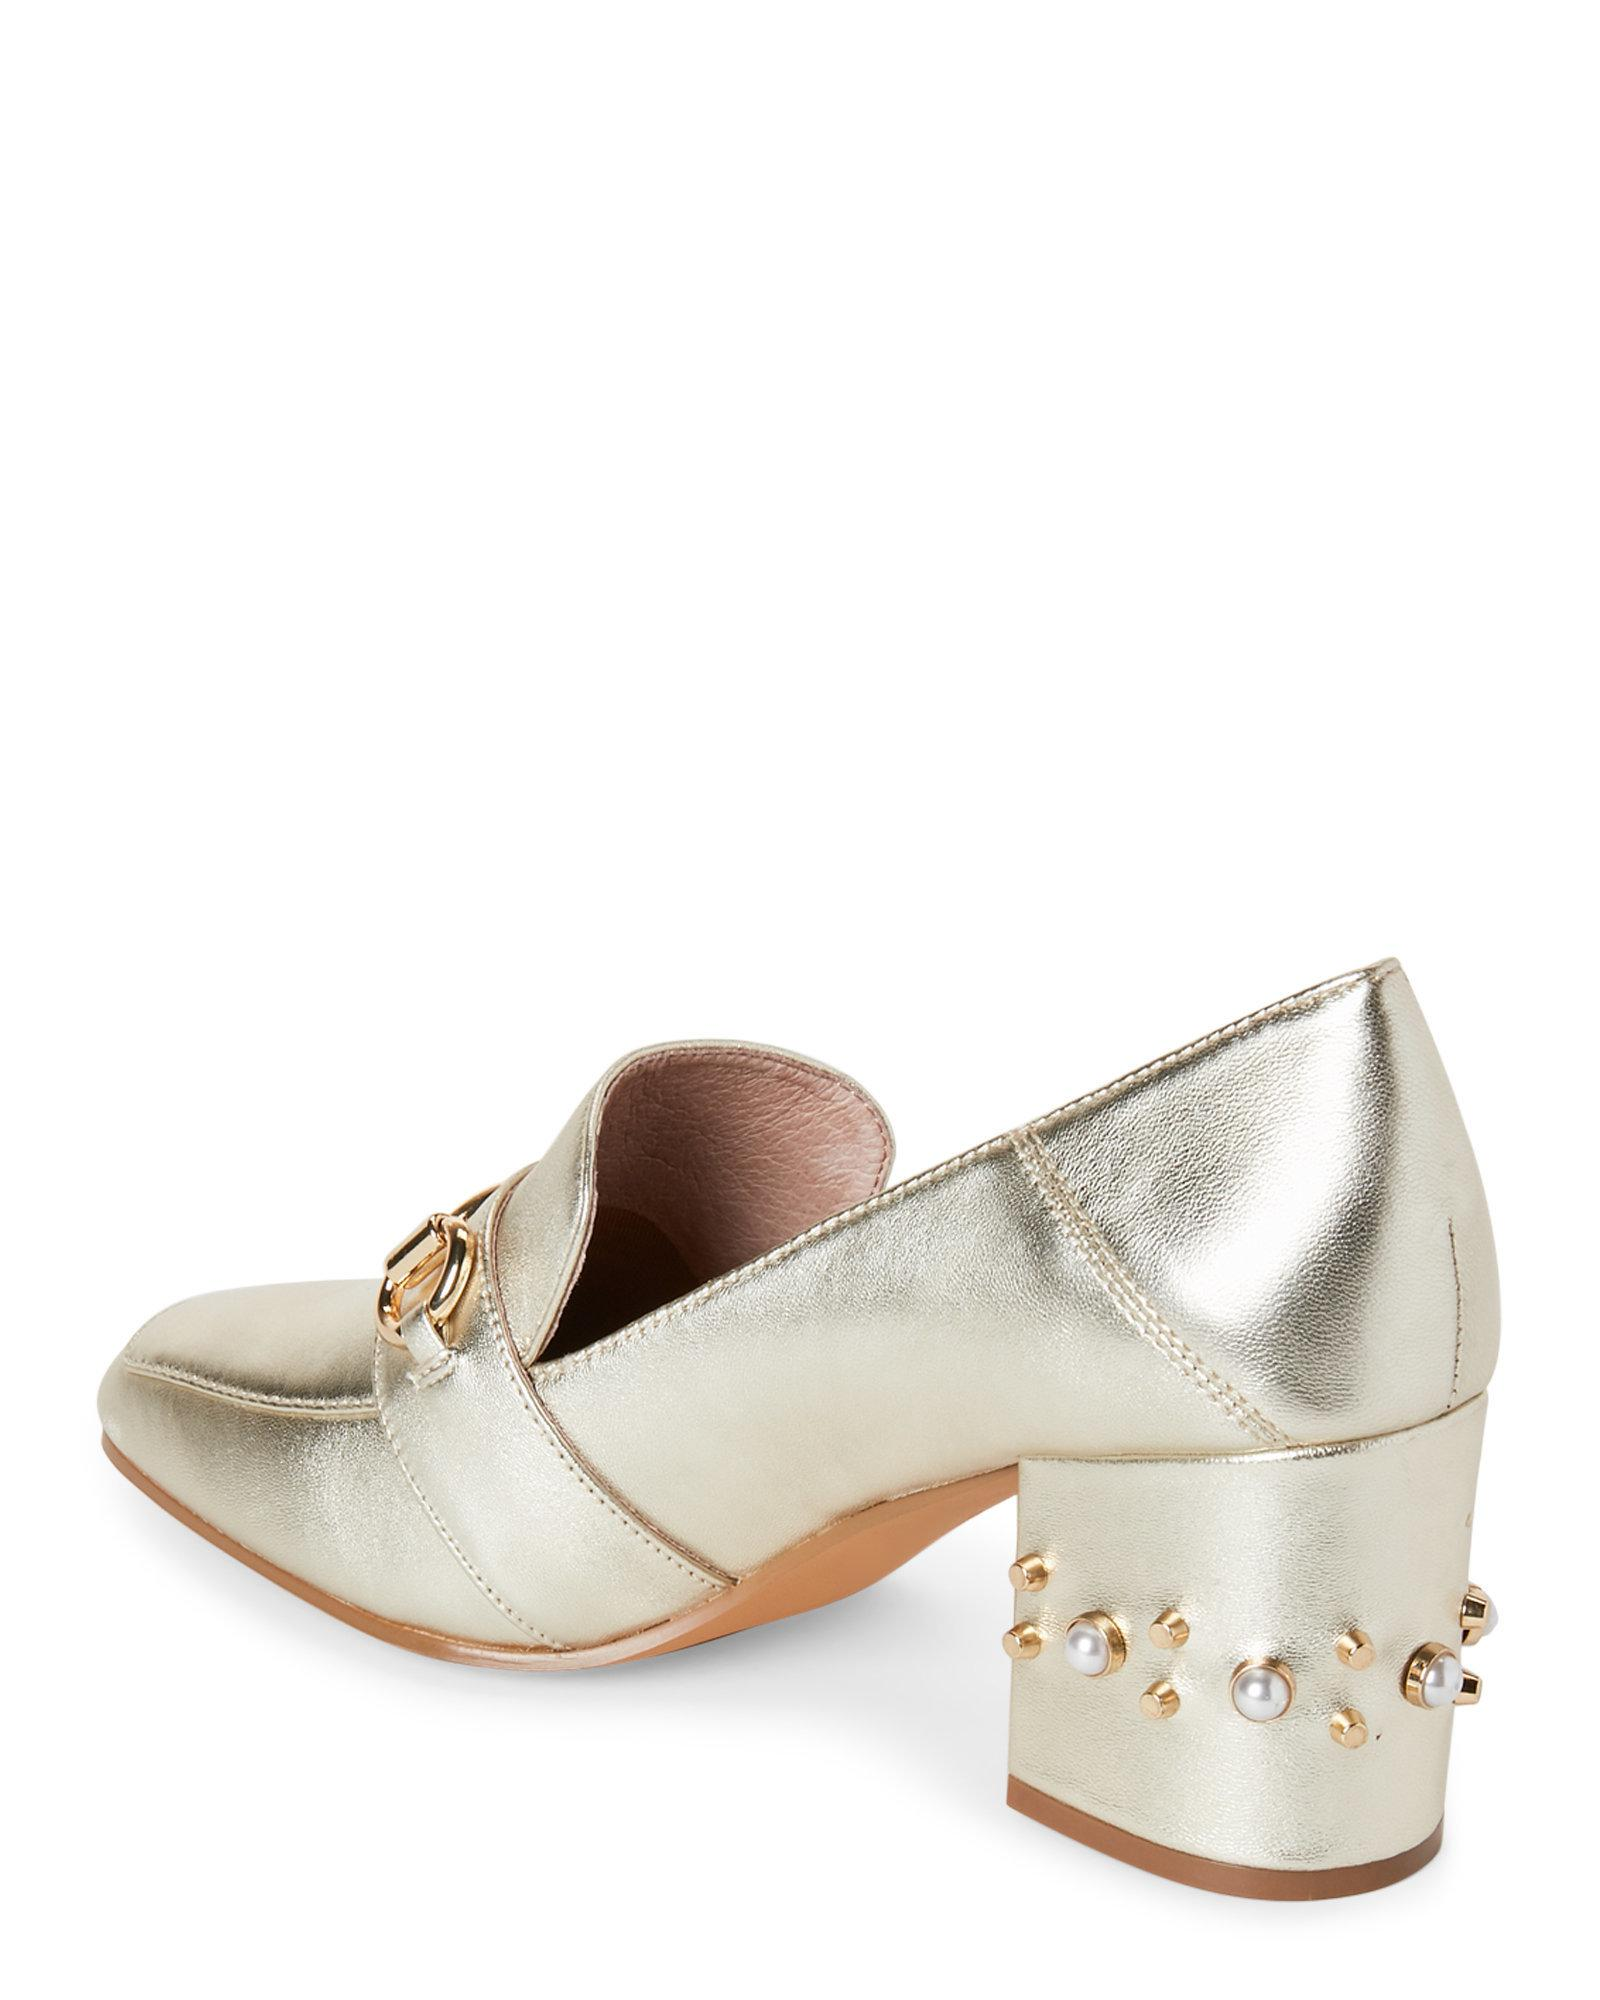 8a79d4a994e Lyst - Steven by Steve Madden Gold Layla Embellished Heel Loafers in ...